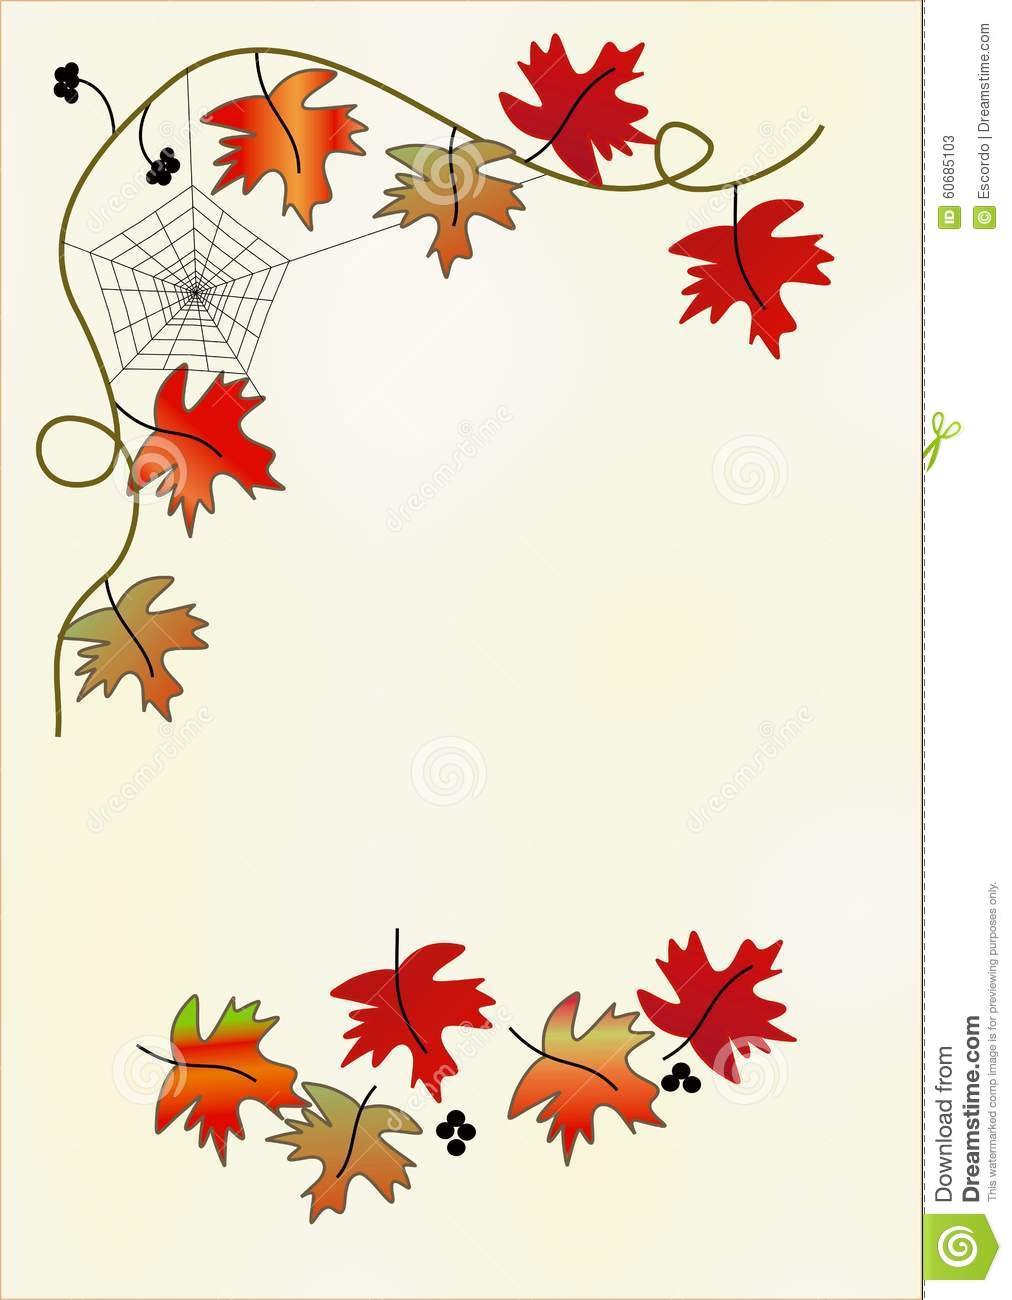 Clipart With Red Leaves And Spider Web Stock Illustration.